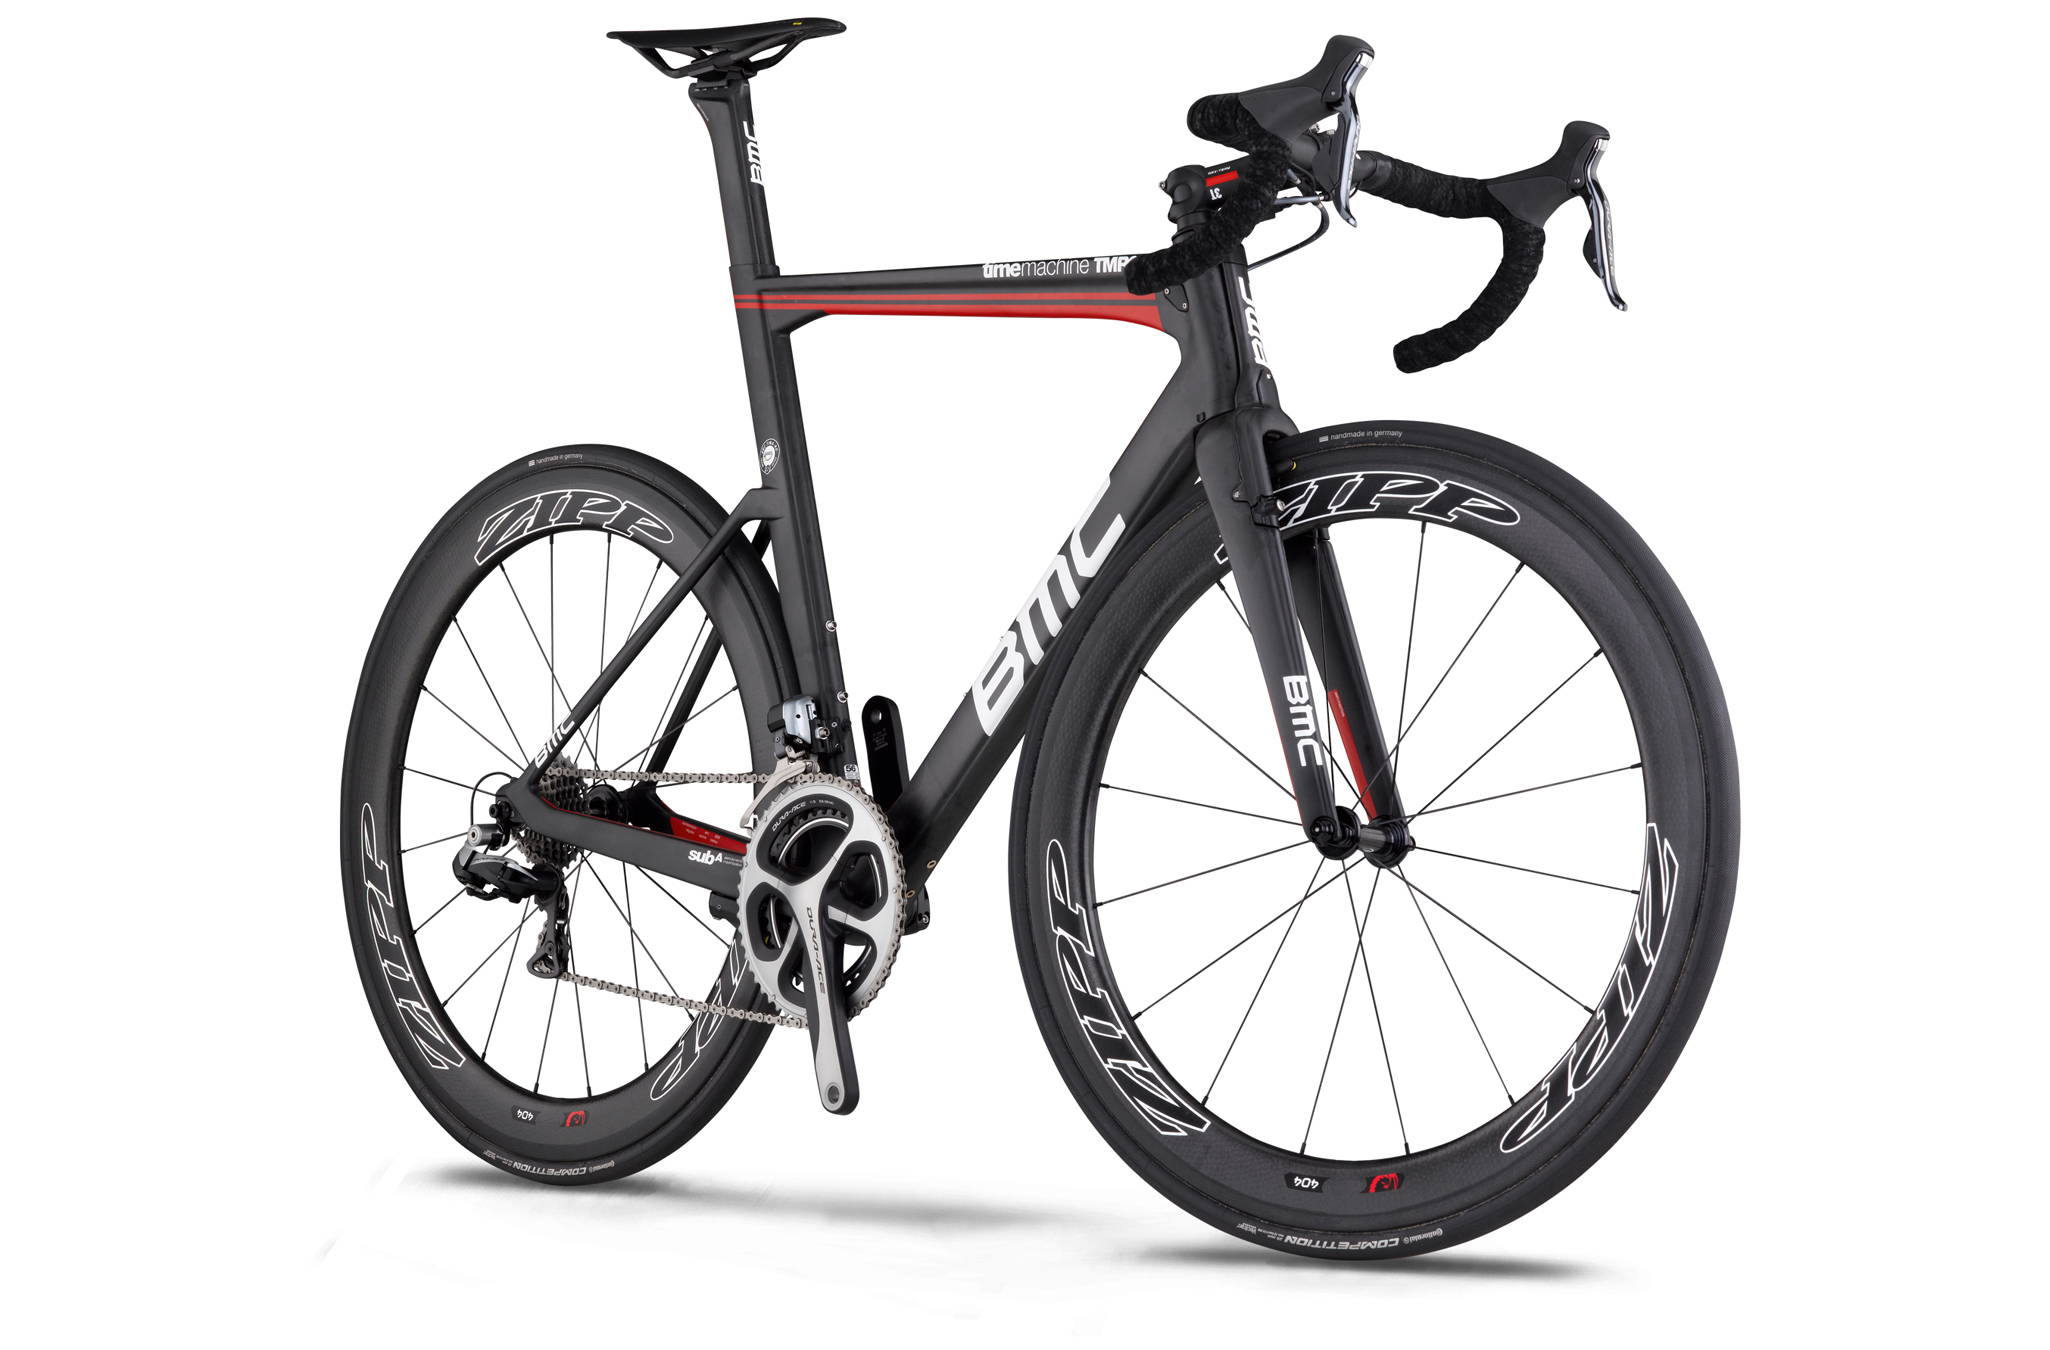 Bmc Timemachine Tmr01 Dura Ace Di2 2014 Review The Bike List